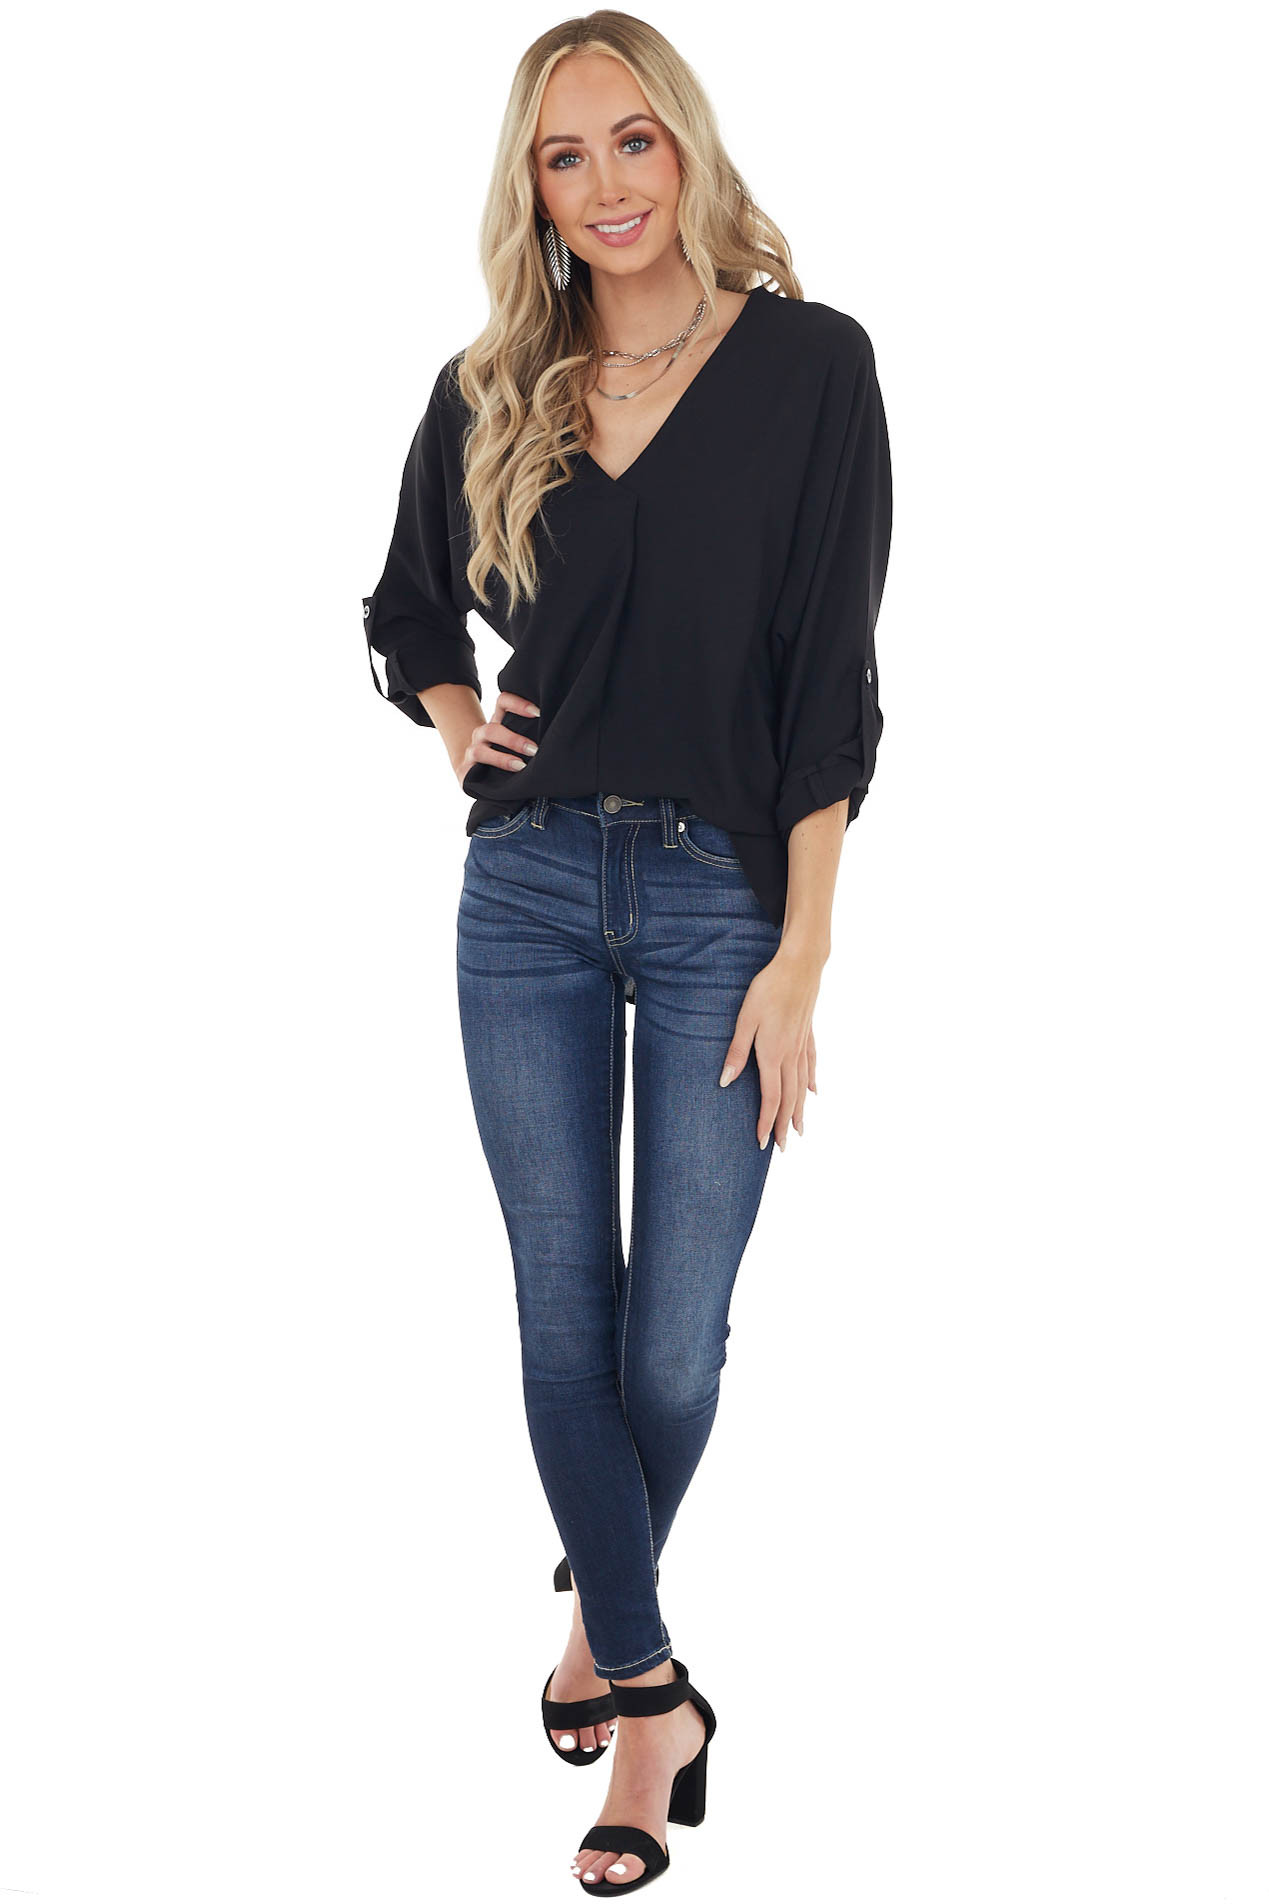 Black Woven 3/4 Sleeve Blouse with Front Pleat Detail